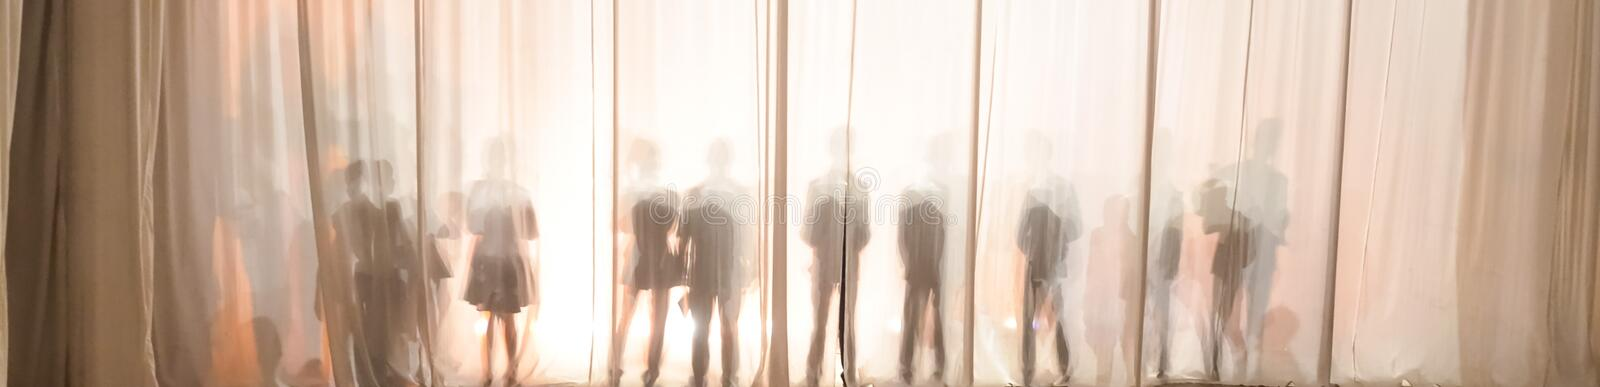 The silhouette of the men behind the curtain in the theater on stage, the shadow behind the scenes is similar to the white and bla. Ck piano keys stock image